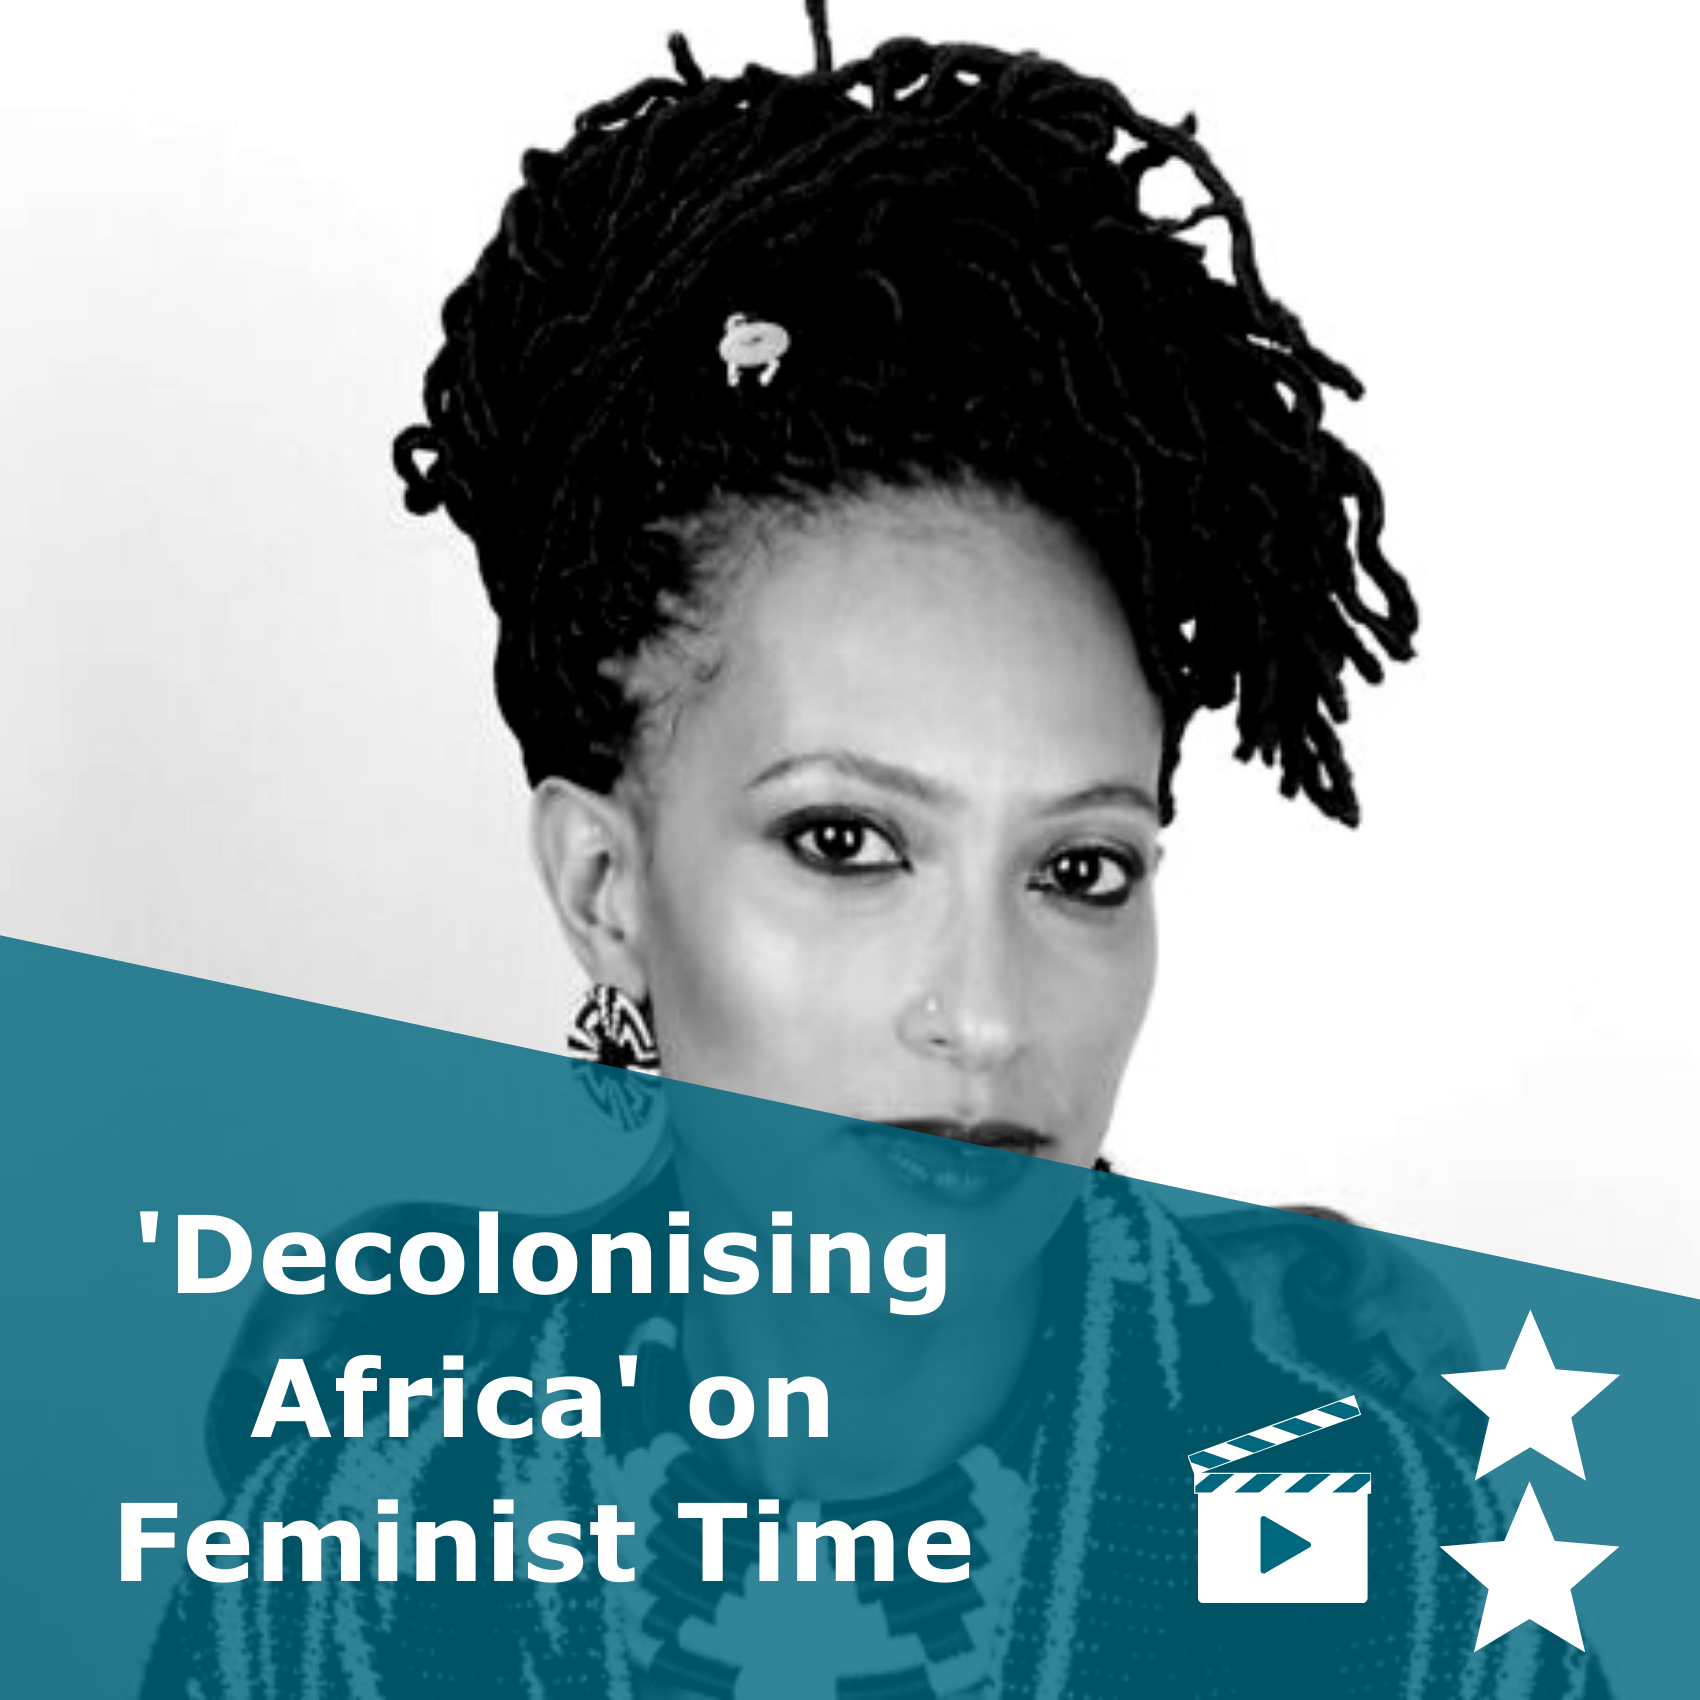 Picture of Jessica Horn in black and white. Title 'Decolonising Africa on Feminist Time'. It is a video rated 2 stars.